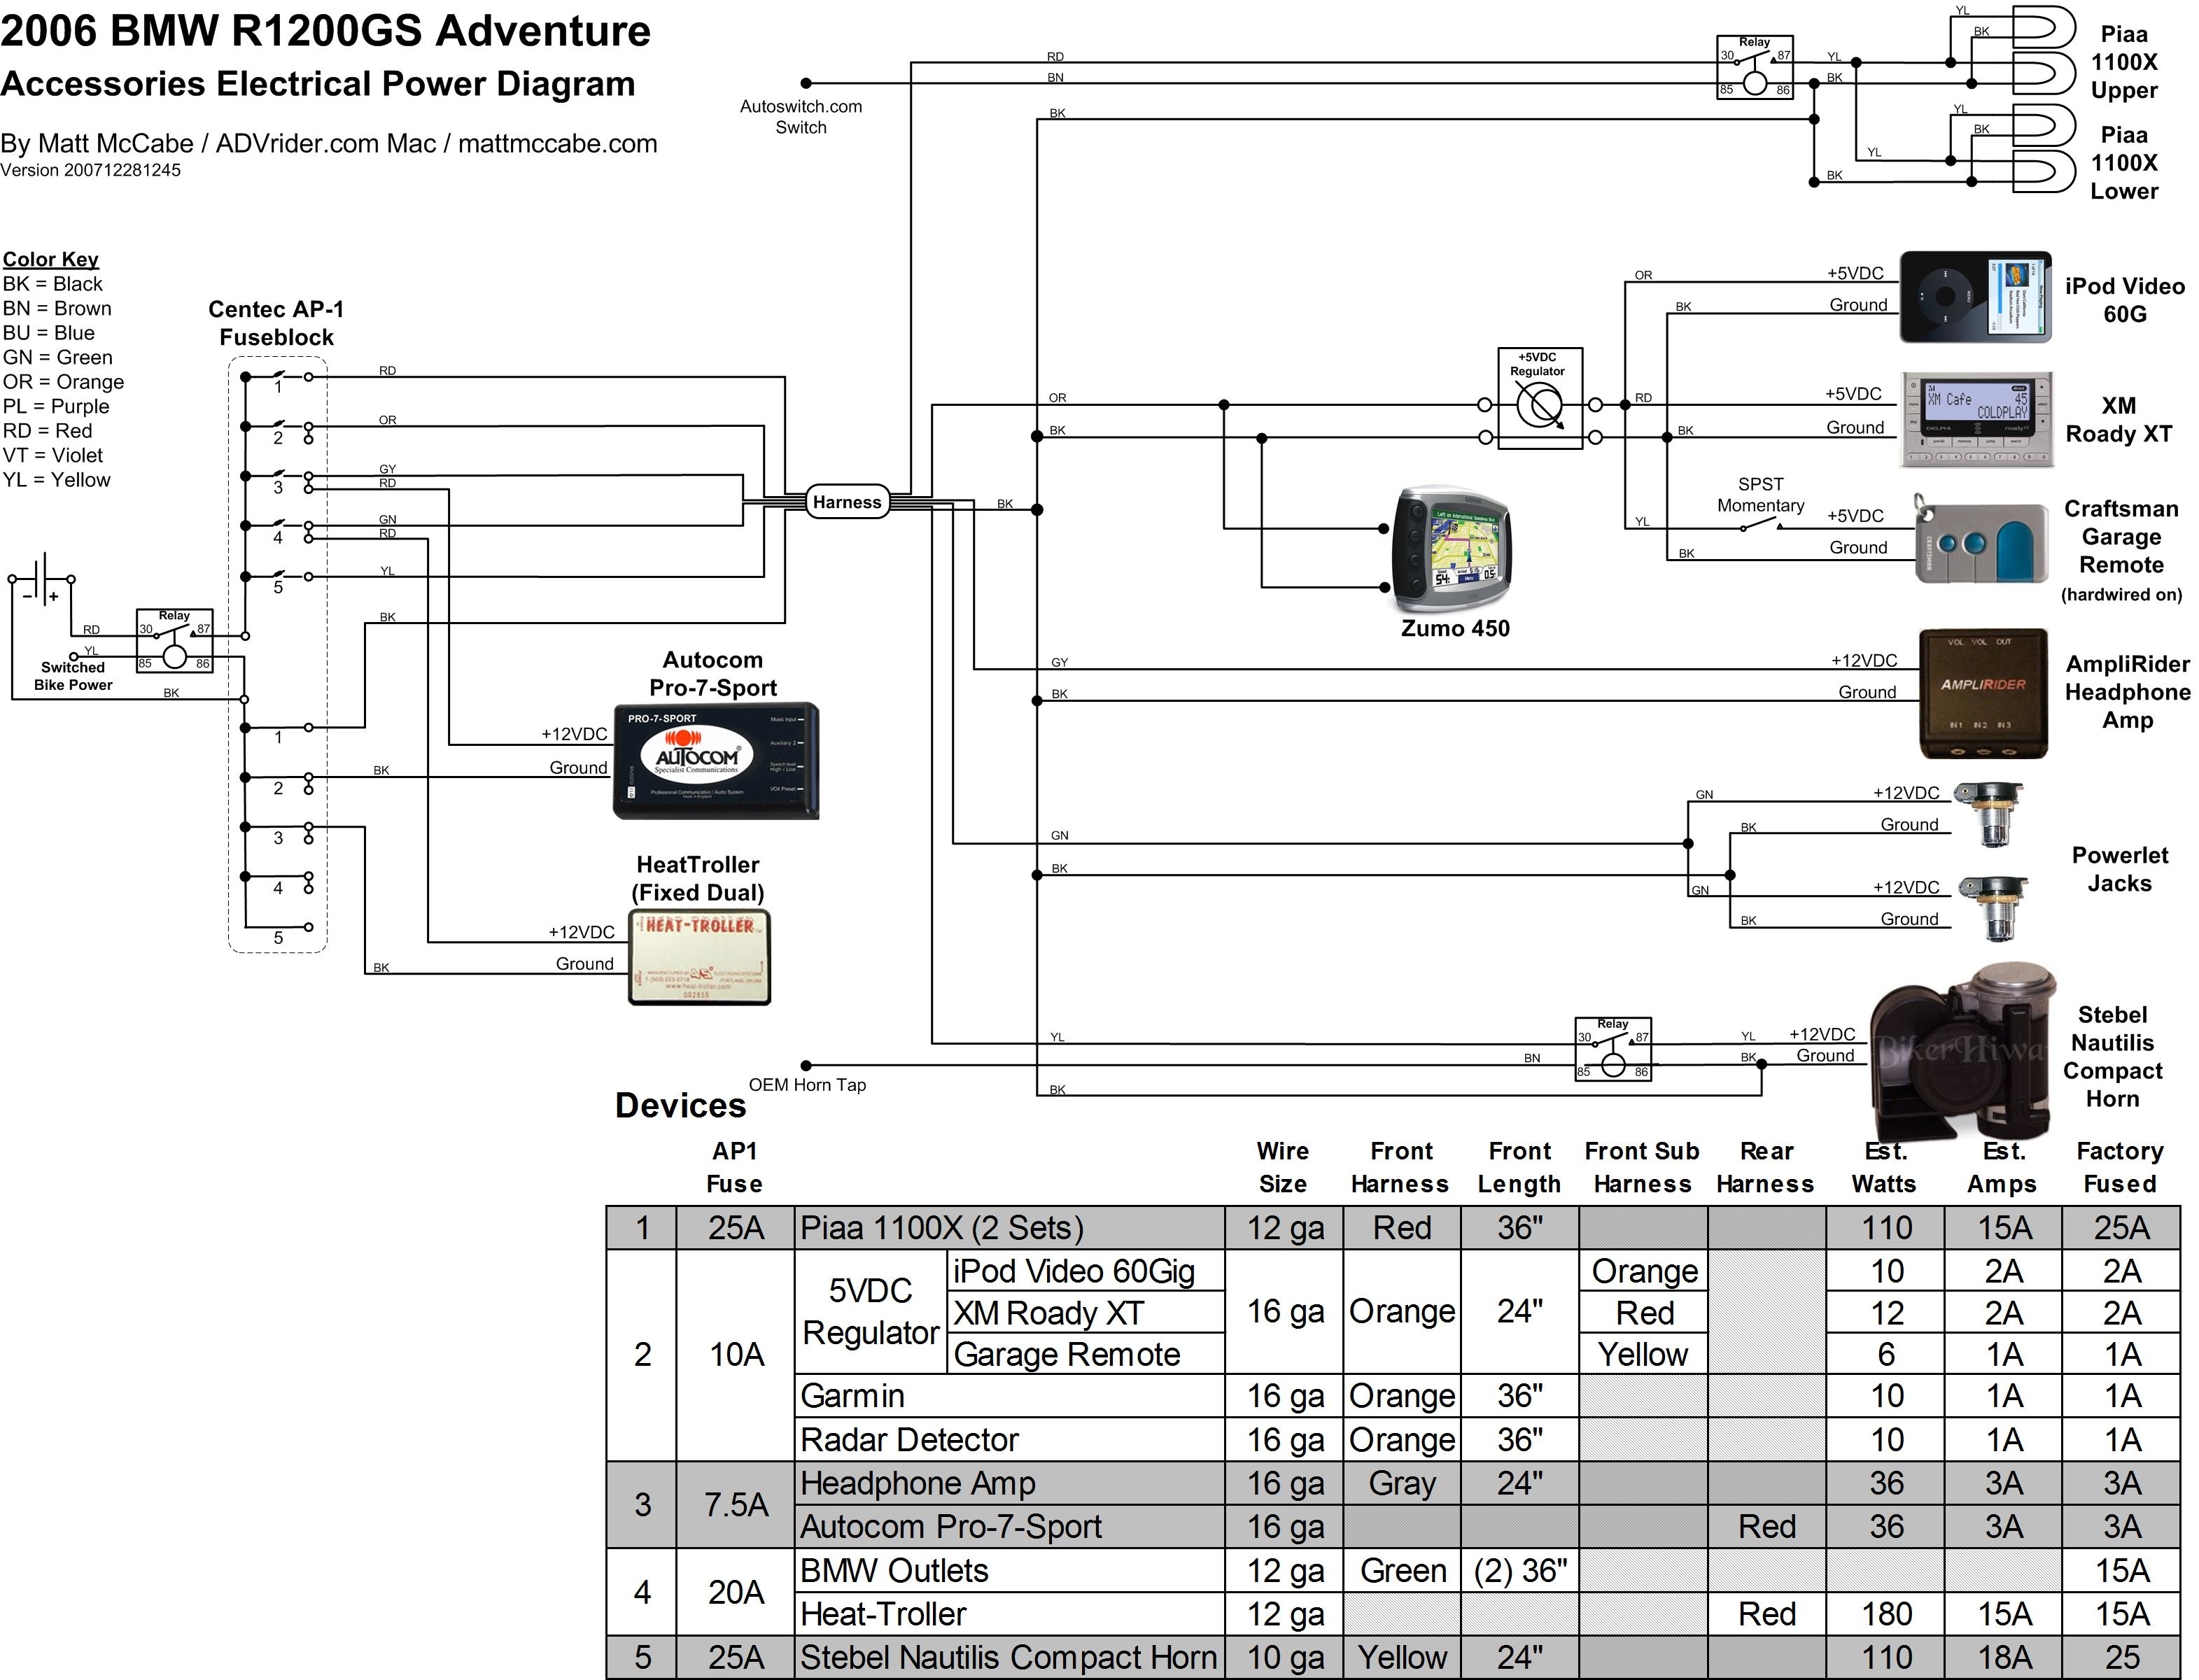 BMW_R1200GSAdv_Accessories_Wiring_Diagram_Version_200712281245_McCabe share bmw_wiring_diagrams centech ap1 wiring diagram at suagrazia.org